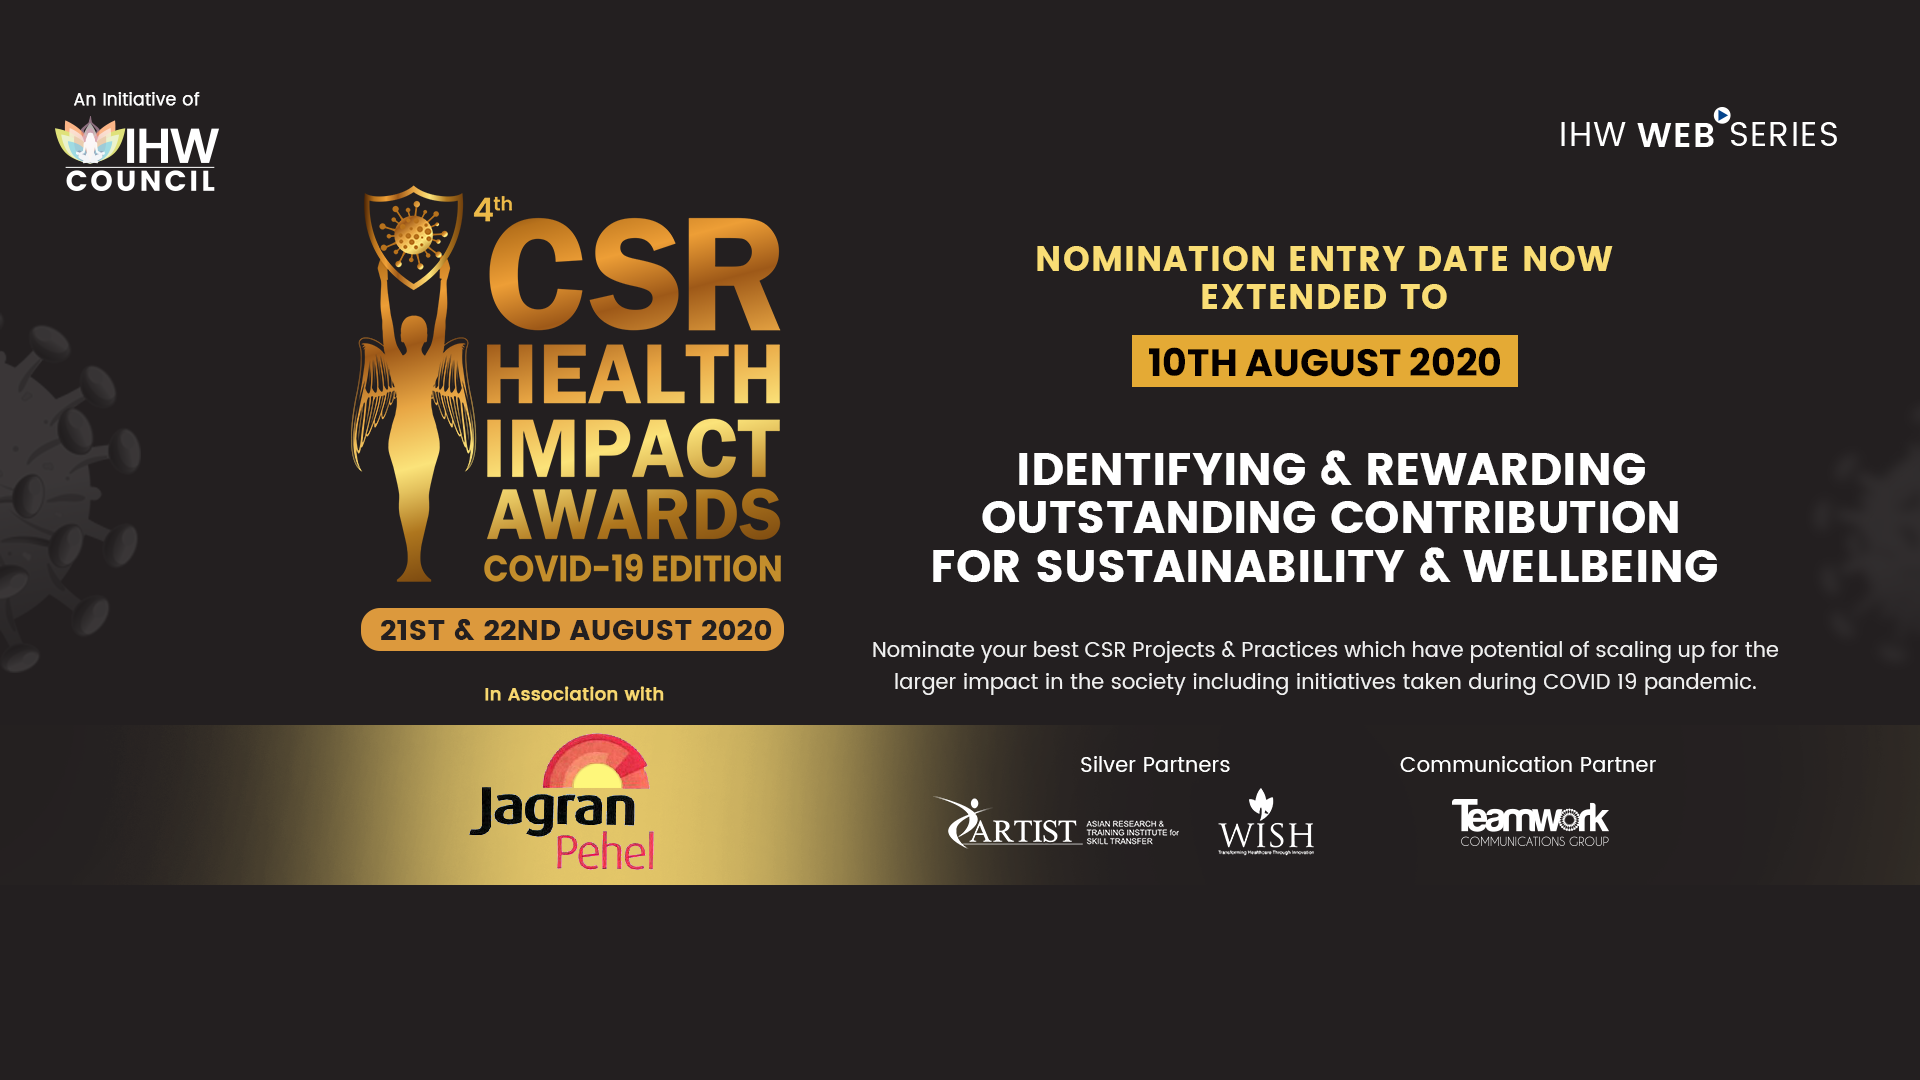 CSR Health Impact Awards